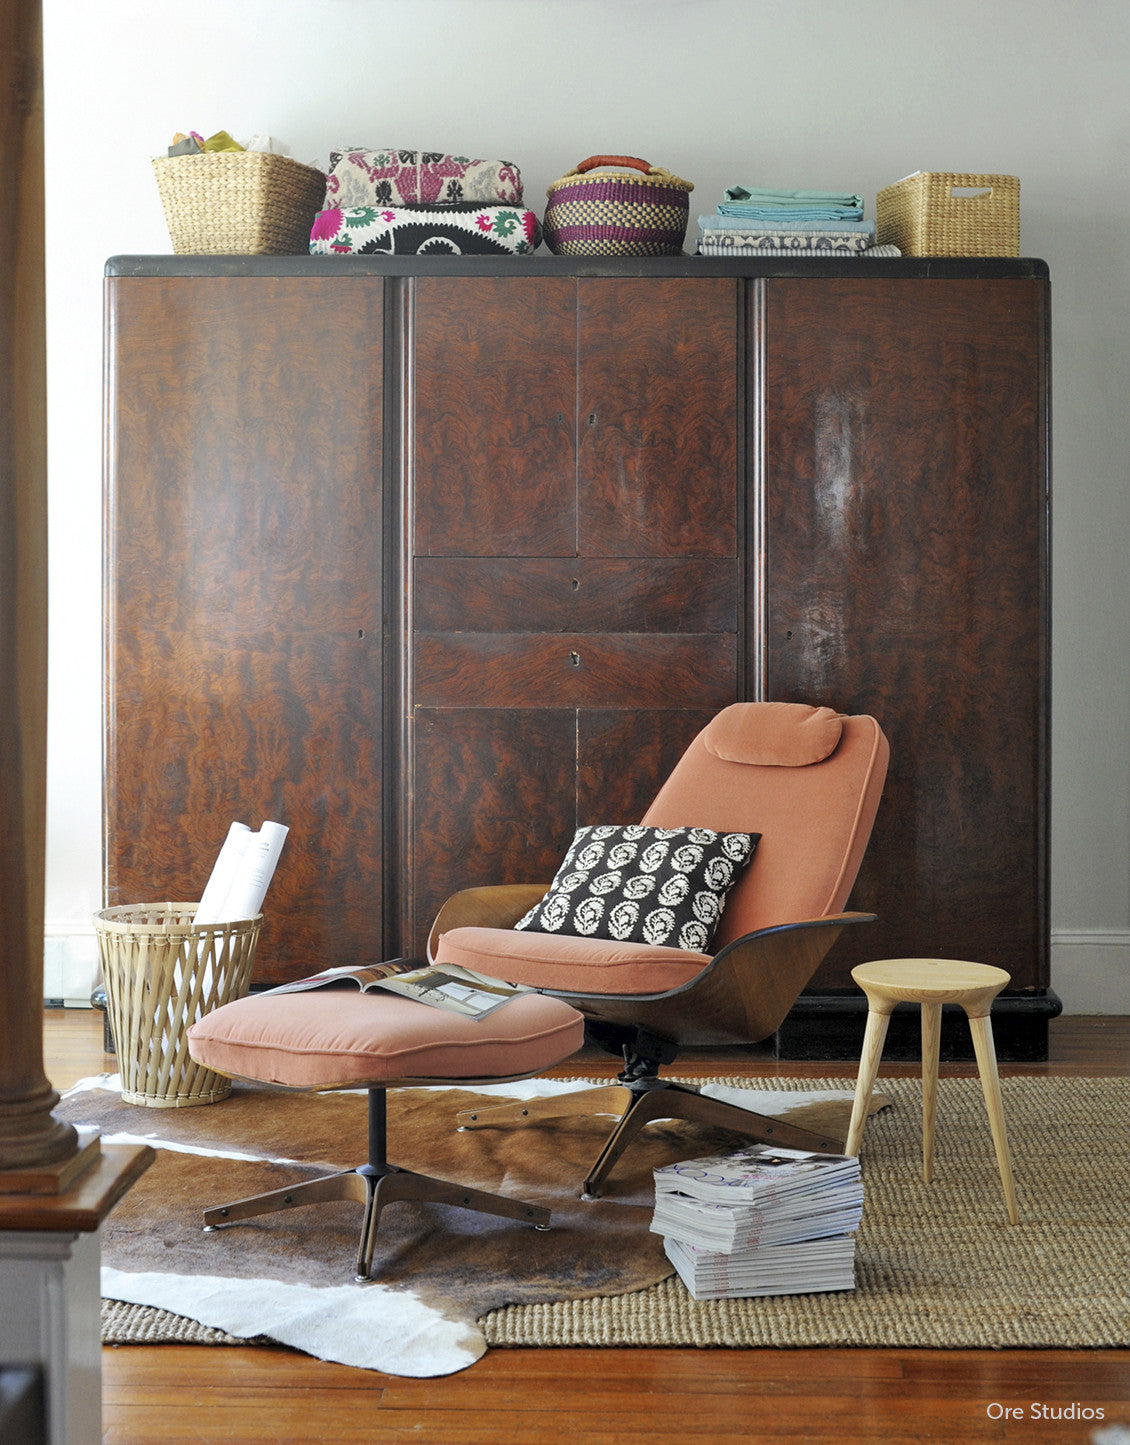 Coventry Stool by Studio DUNN as a side table next to a peach lounge chair with a hide rug below and large wooden cabinet behind in a space designed by Ore Studios